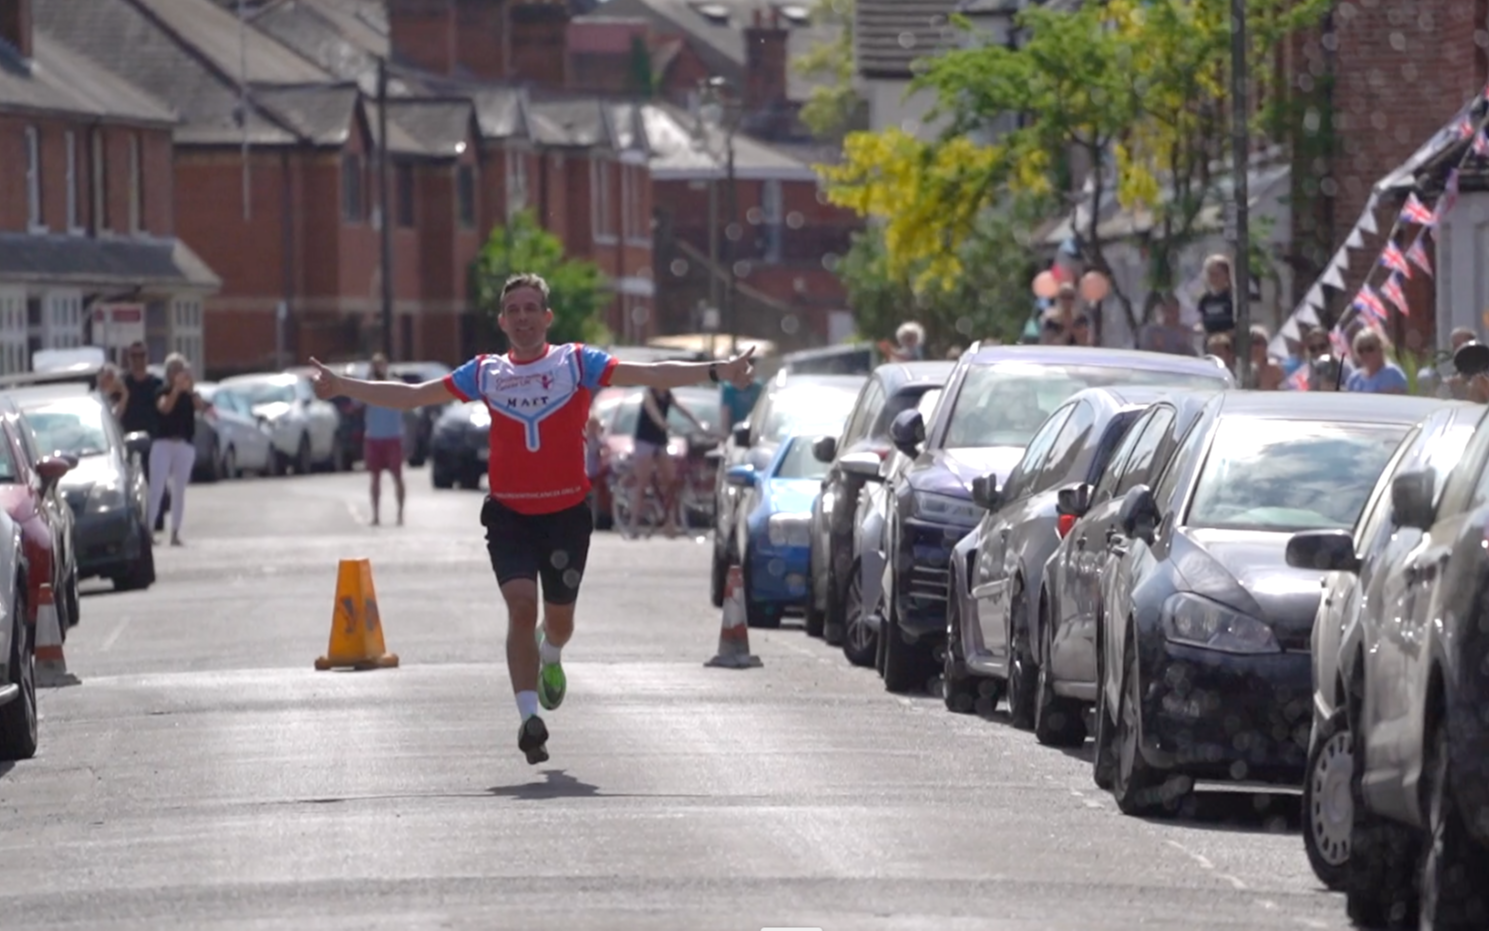 Matt Thomas completes his neighbourhood marathon